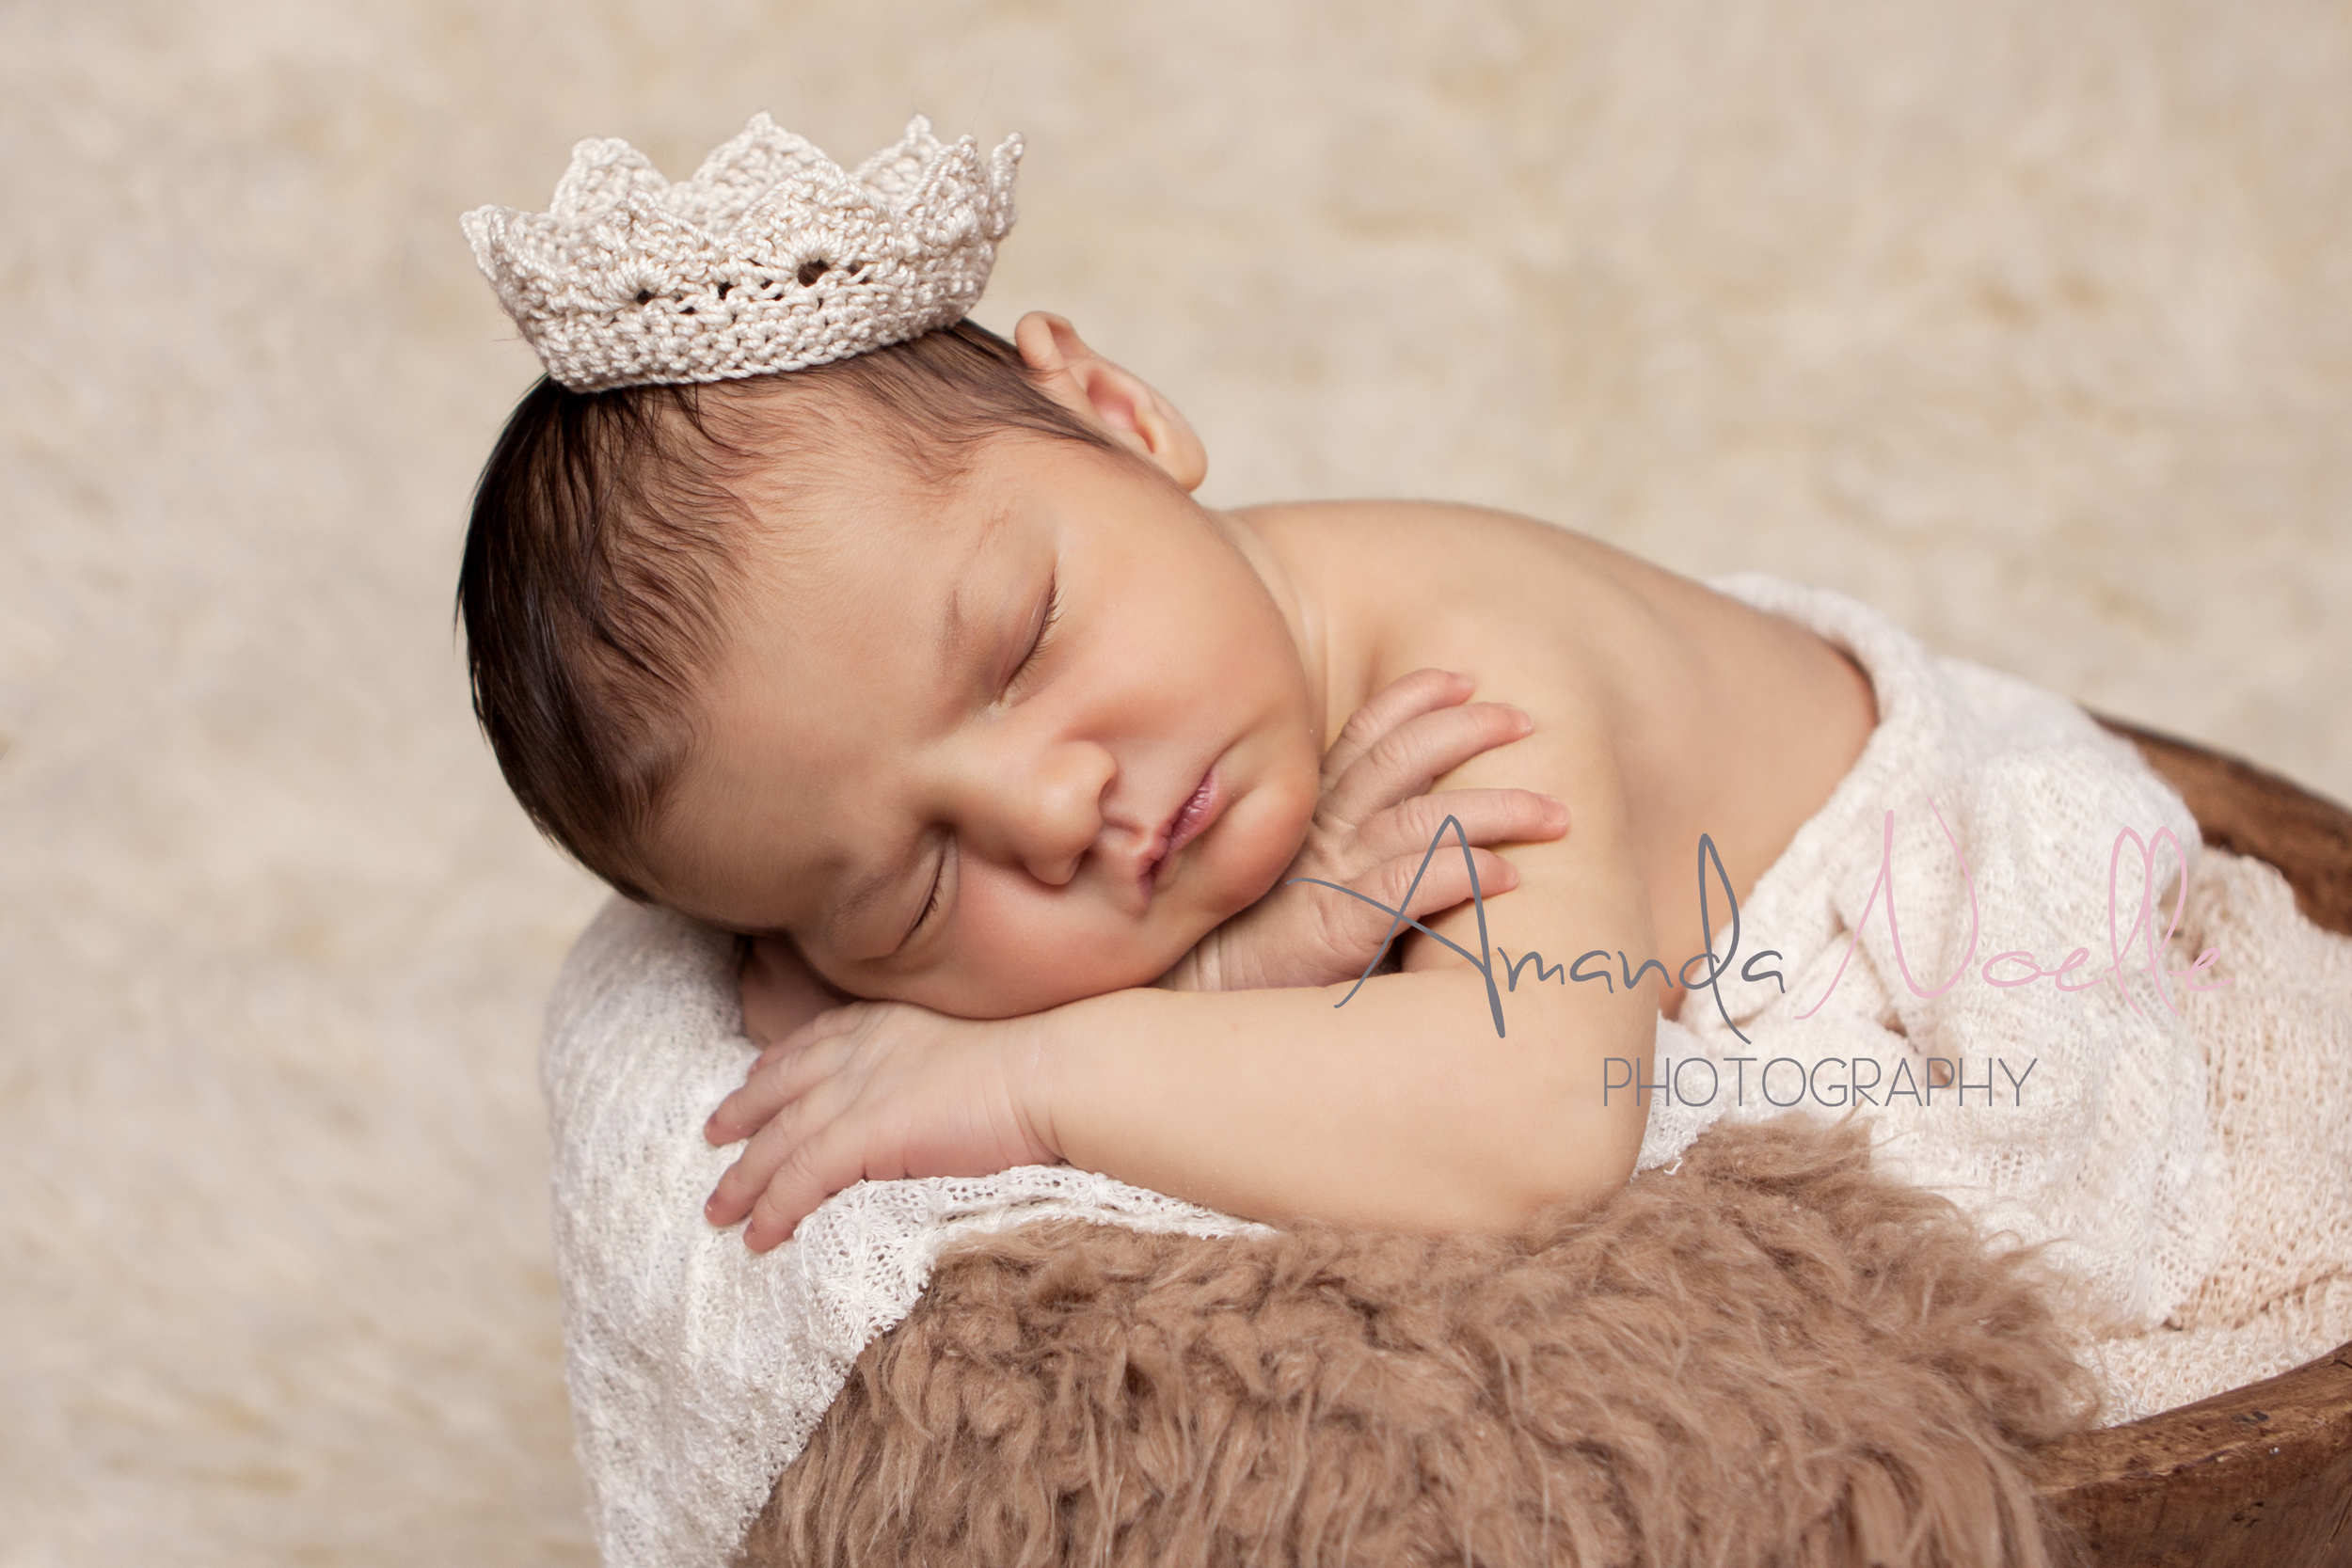 Newborn baby girl, in bucket, layering fabric and fur, tiny crochet princess crown tiara, brown creme, creme rug, sleeping prop pose by Westchester County, New York, Newborn Photographer, Amanda Noelle Photography.